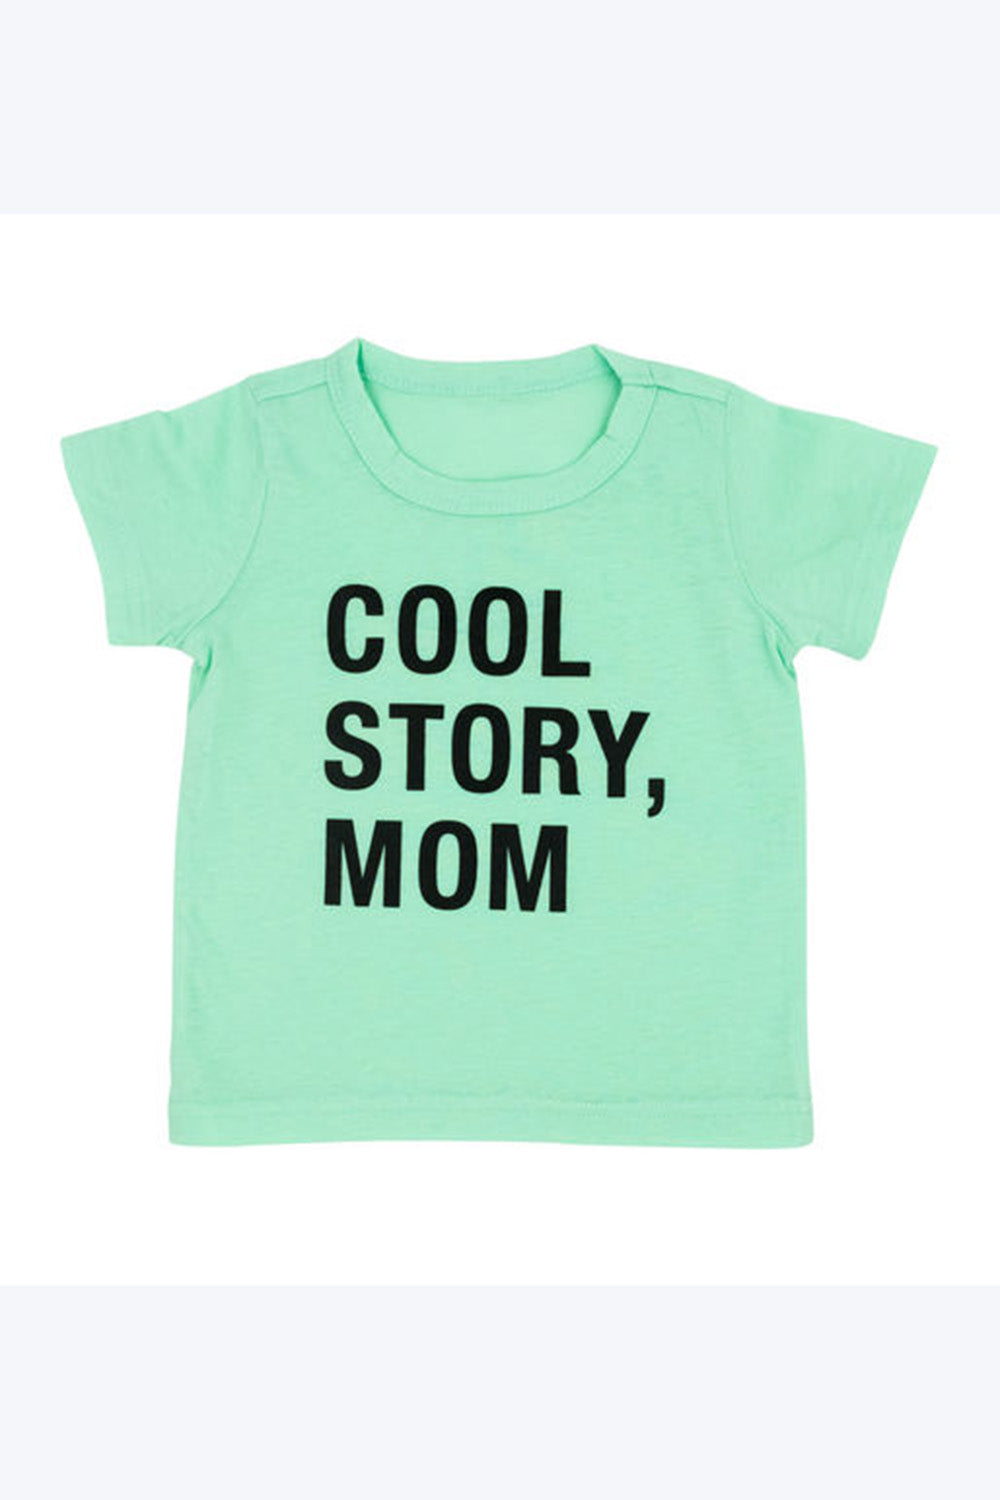 Funny Kid Tee Shirt - Cool Story Mom